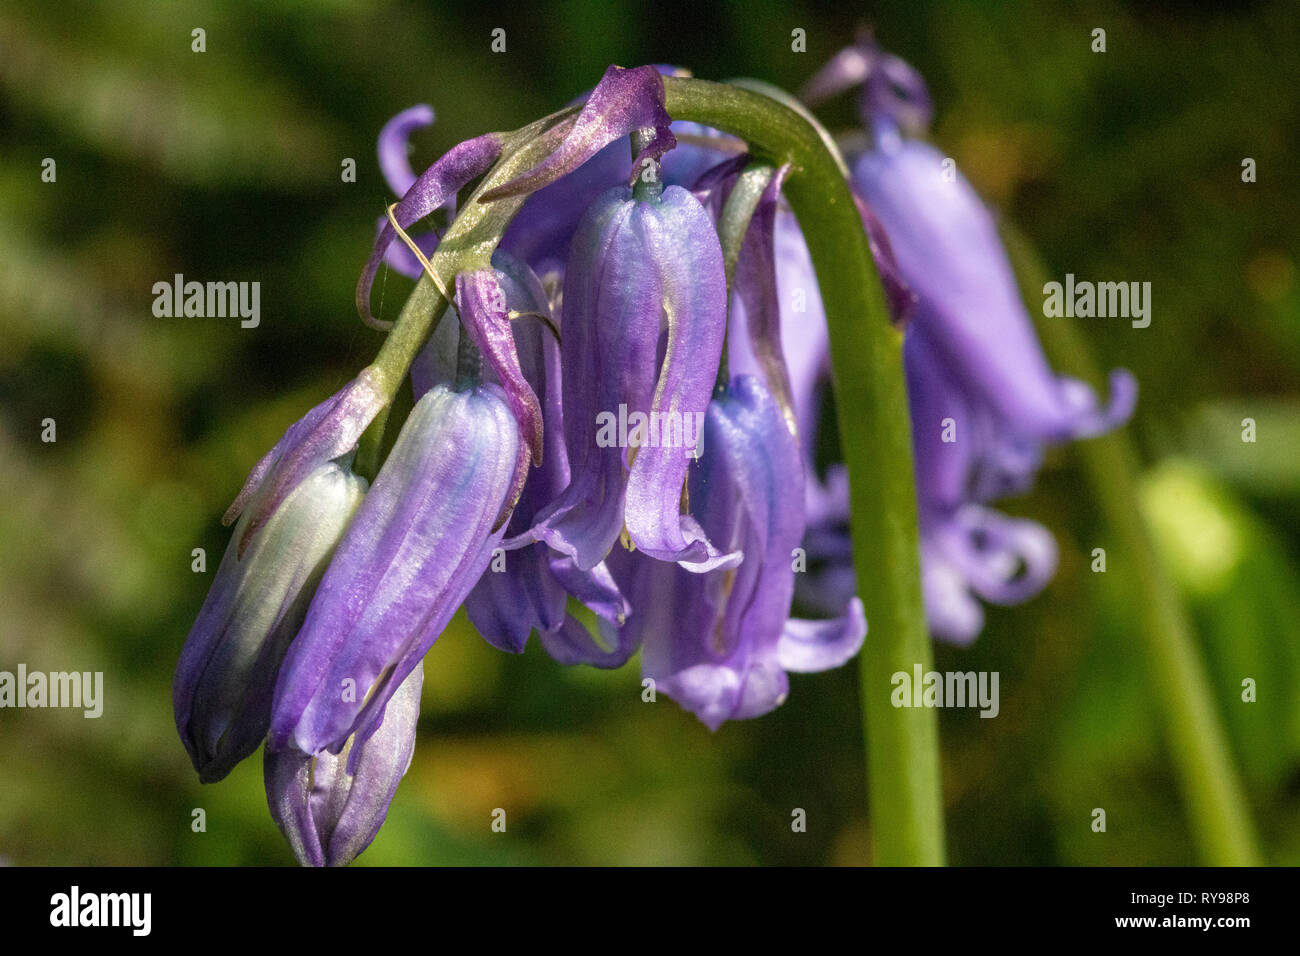 Close up Detail of a Single Bluebell Flower Head (Hyacinthoides non-scripta) Amongst a Large Cluster Growing Beside the River Torridge in North Devon. - Stock Image